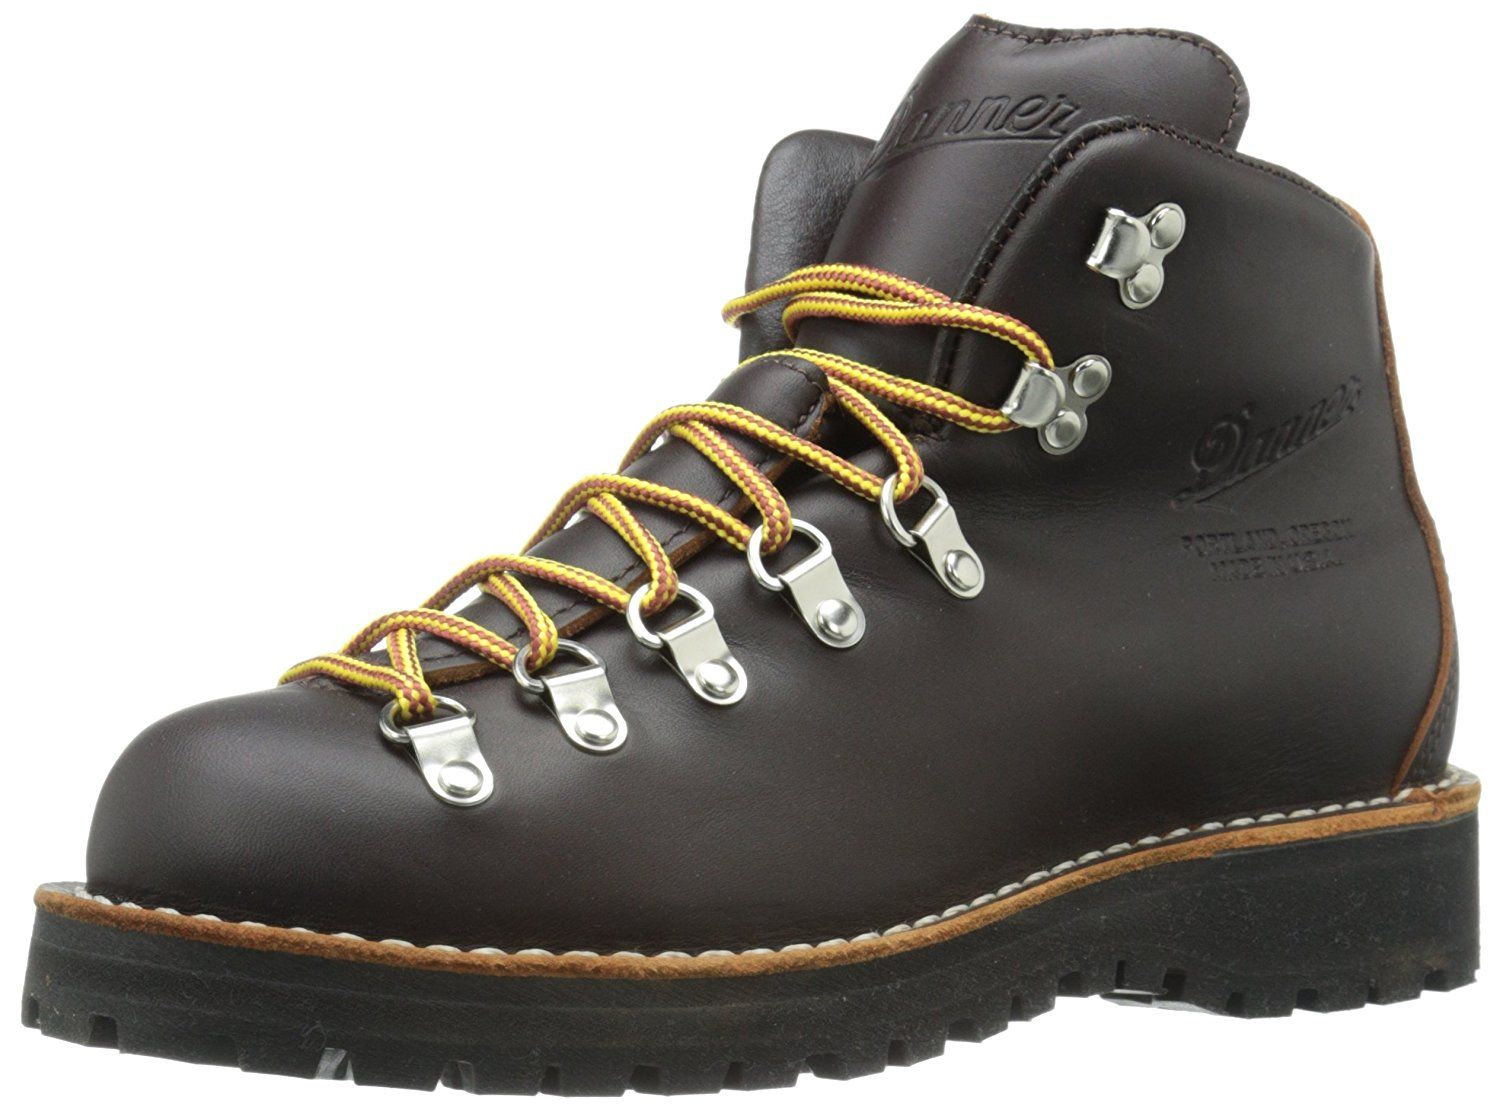 Danner Women's Mountain Light Hiking Boot ** Startling review ...